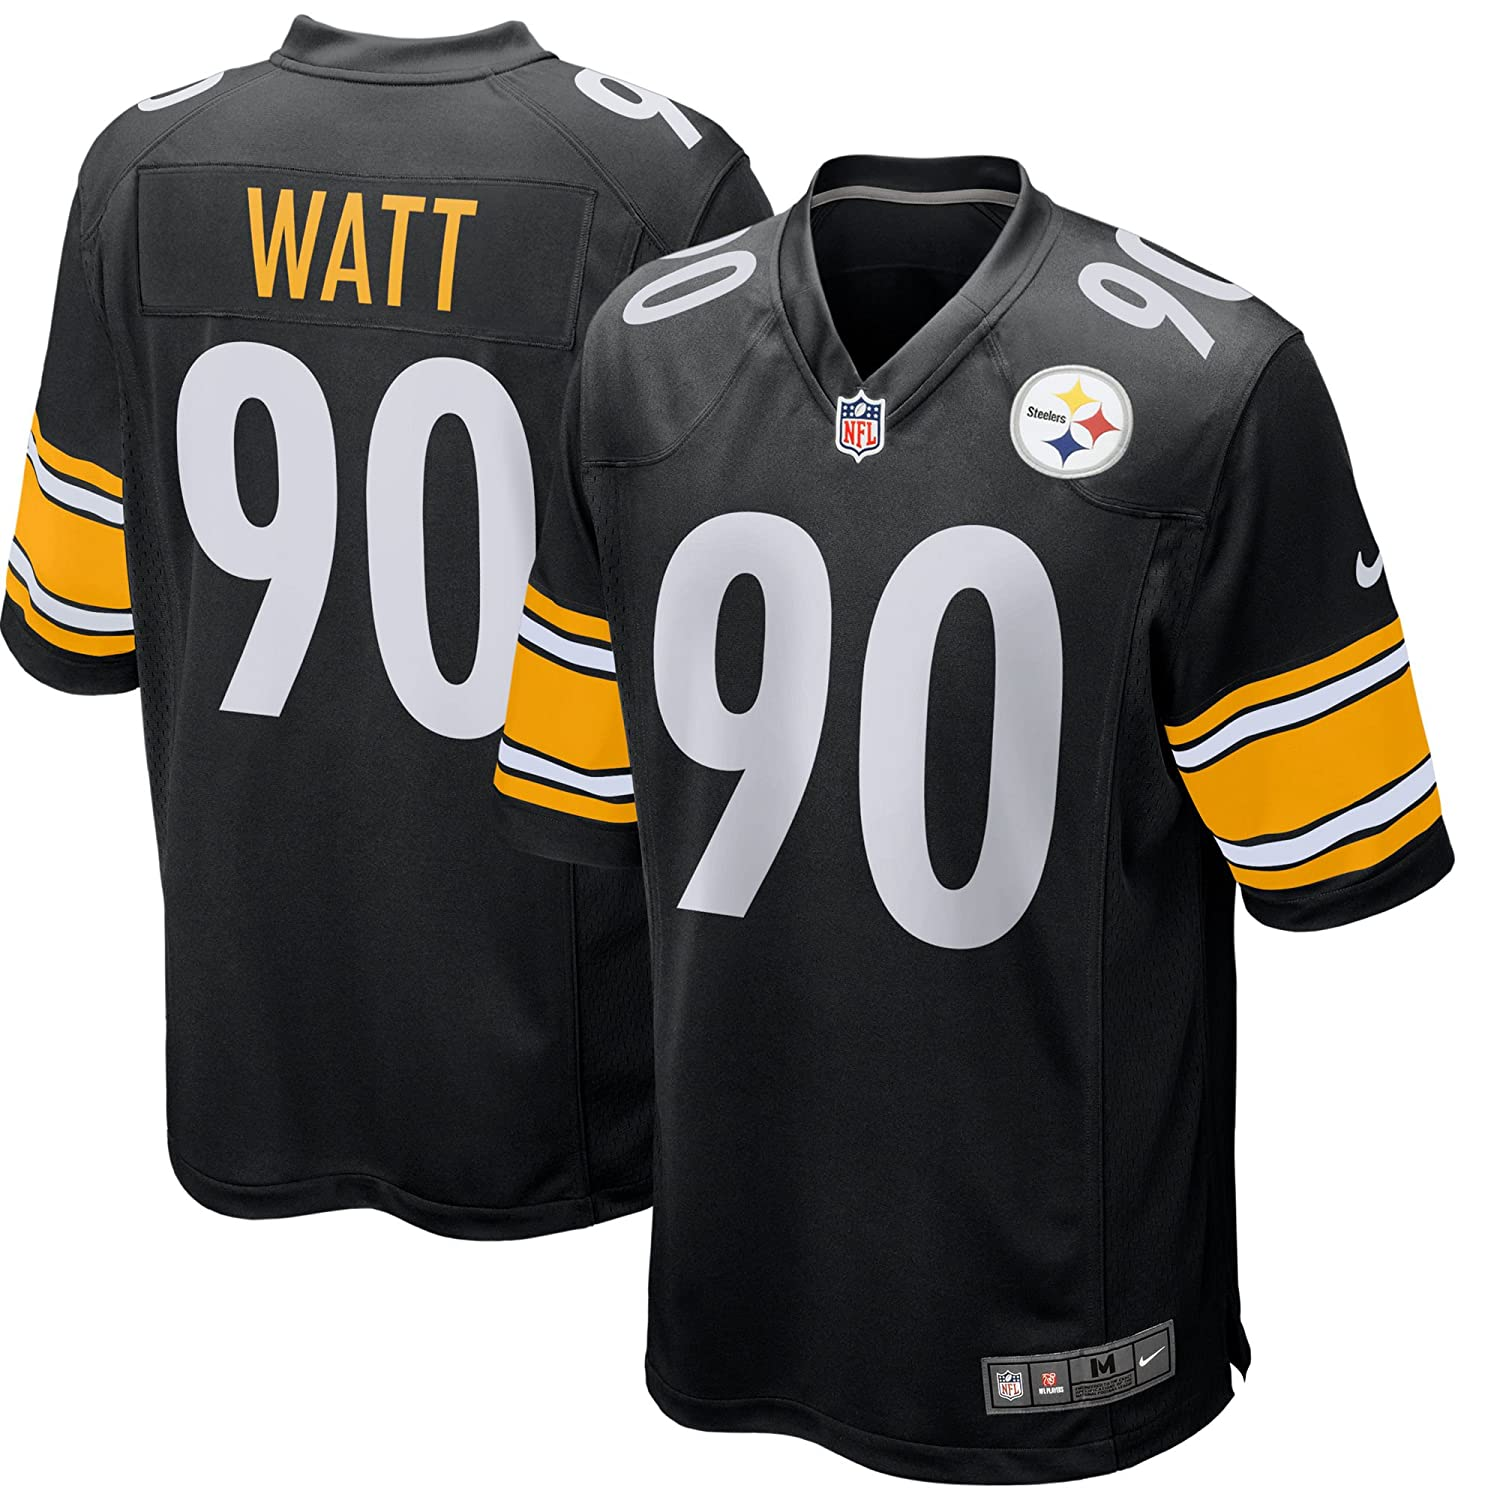 Nike T.J. Watt Pittsburgh Steelers Game Youth Black Jersey (Youth Sizes) da509a3ab